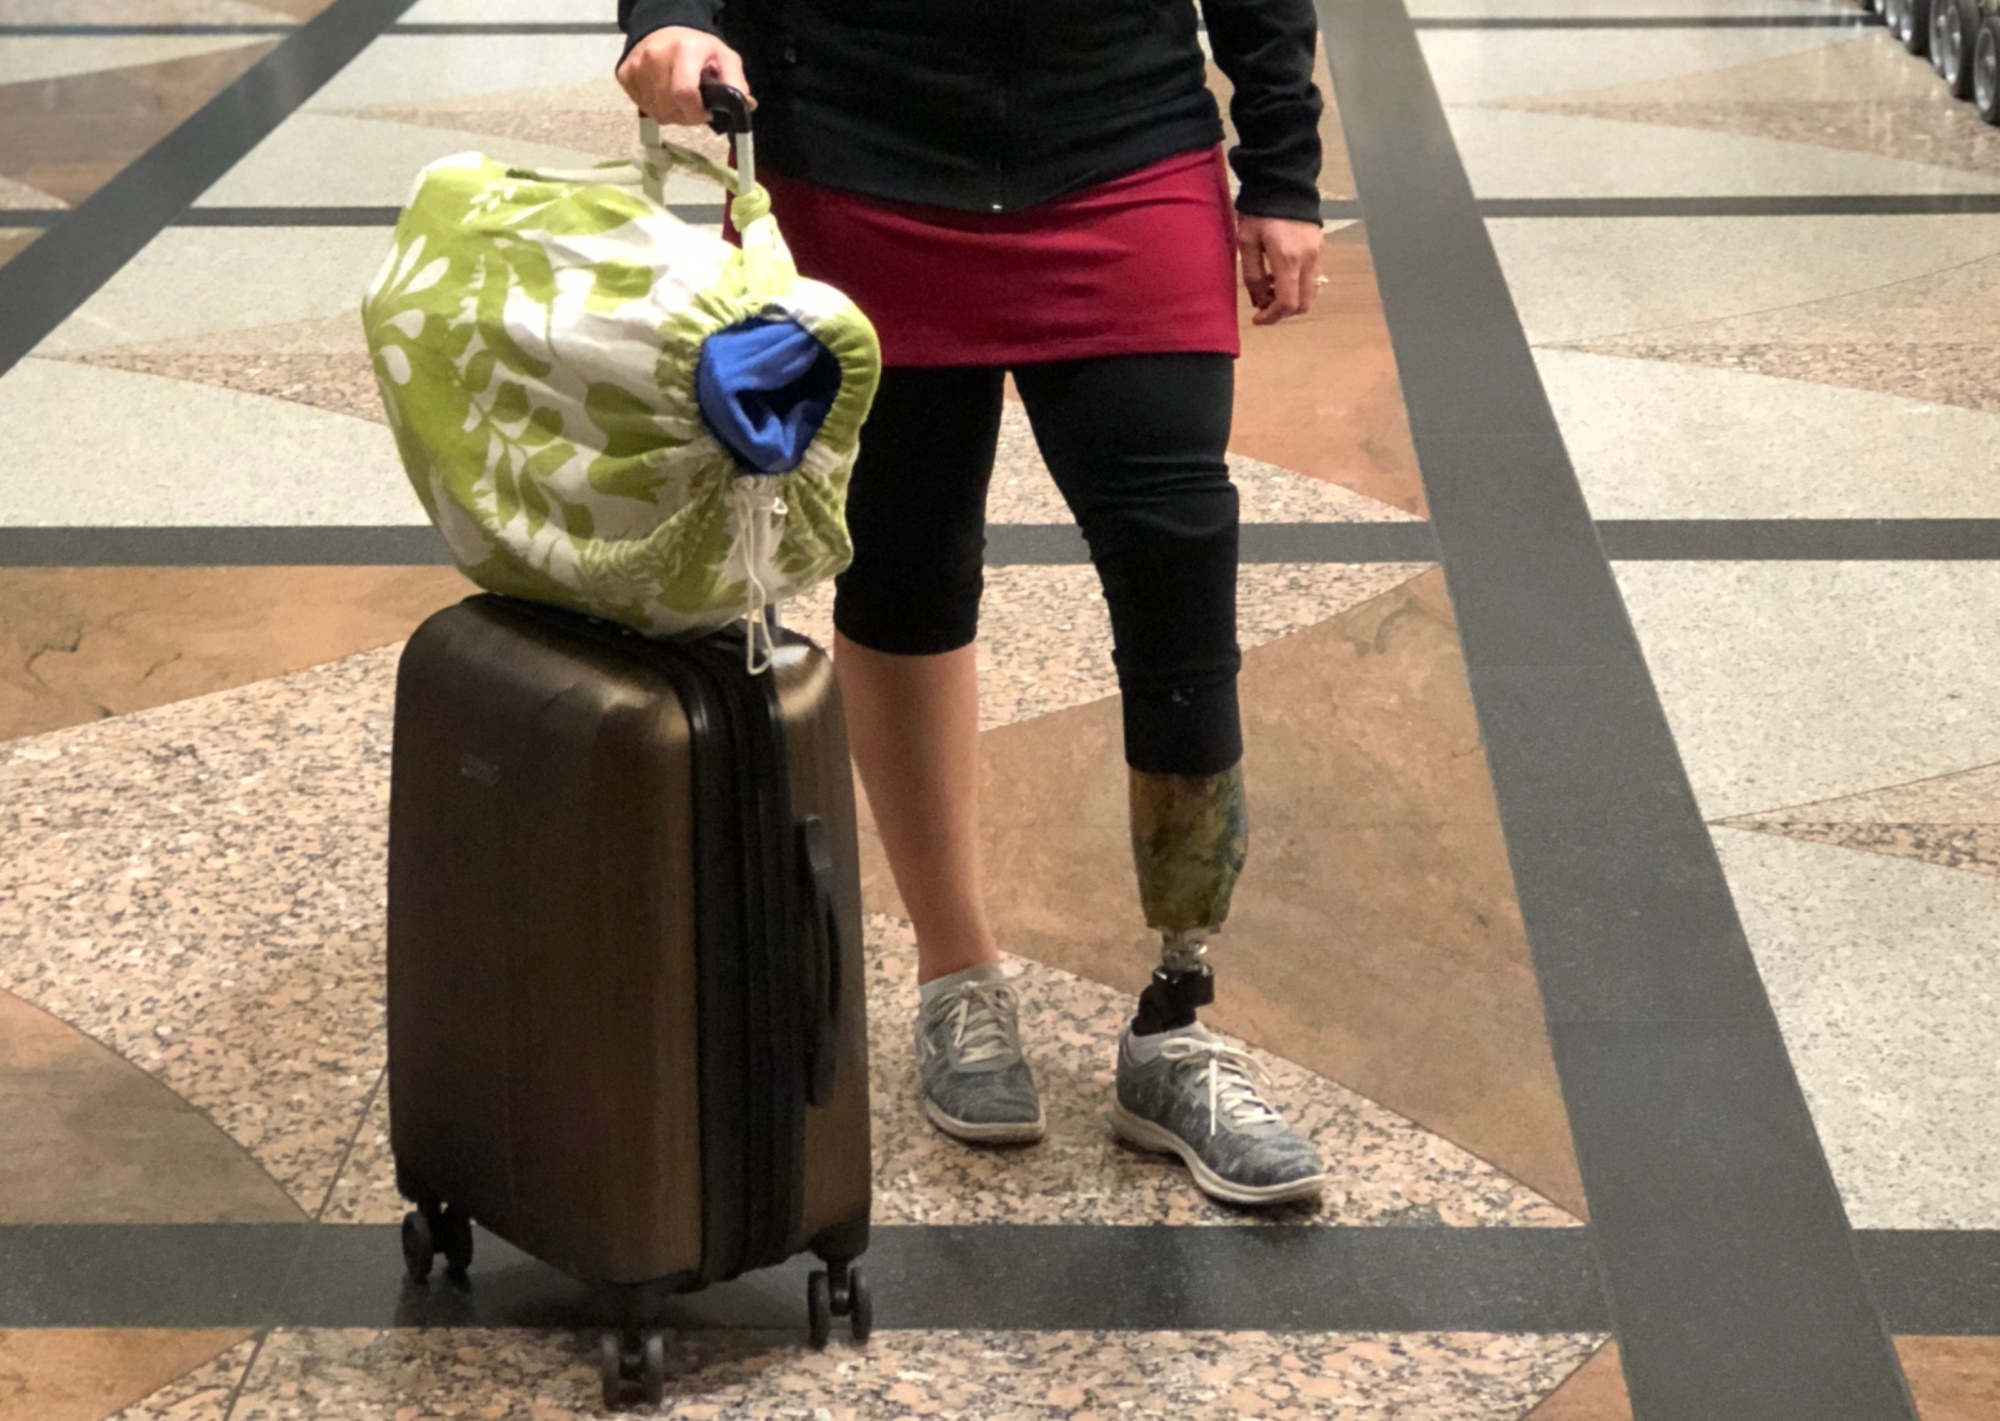 Emily standing at the airport with her rolling suitcase and bag of legs on top